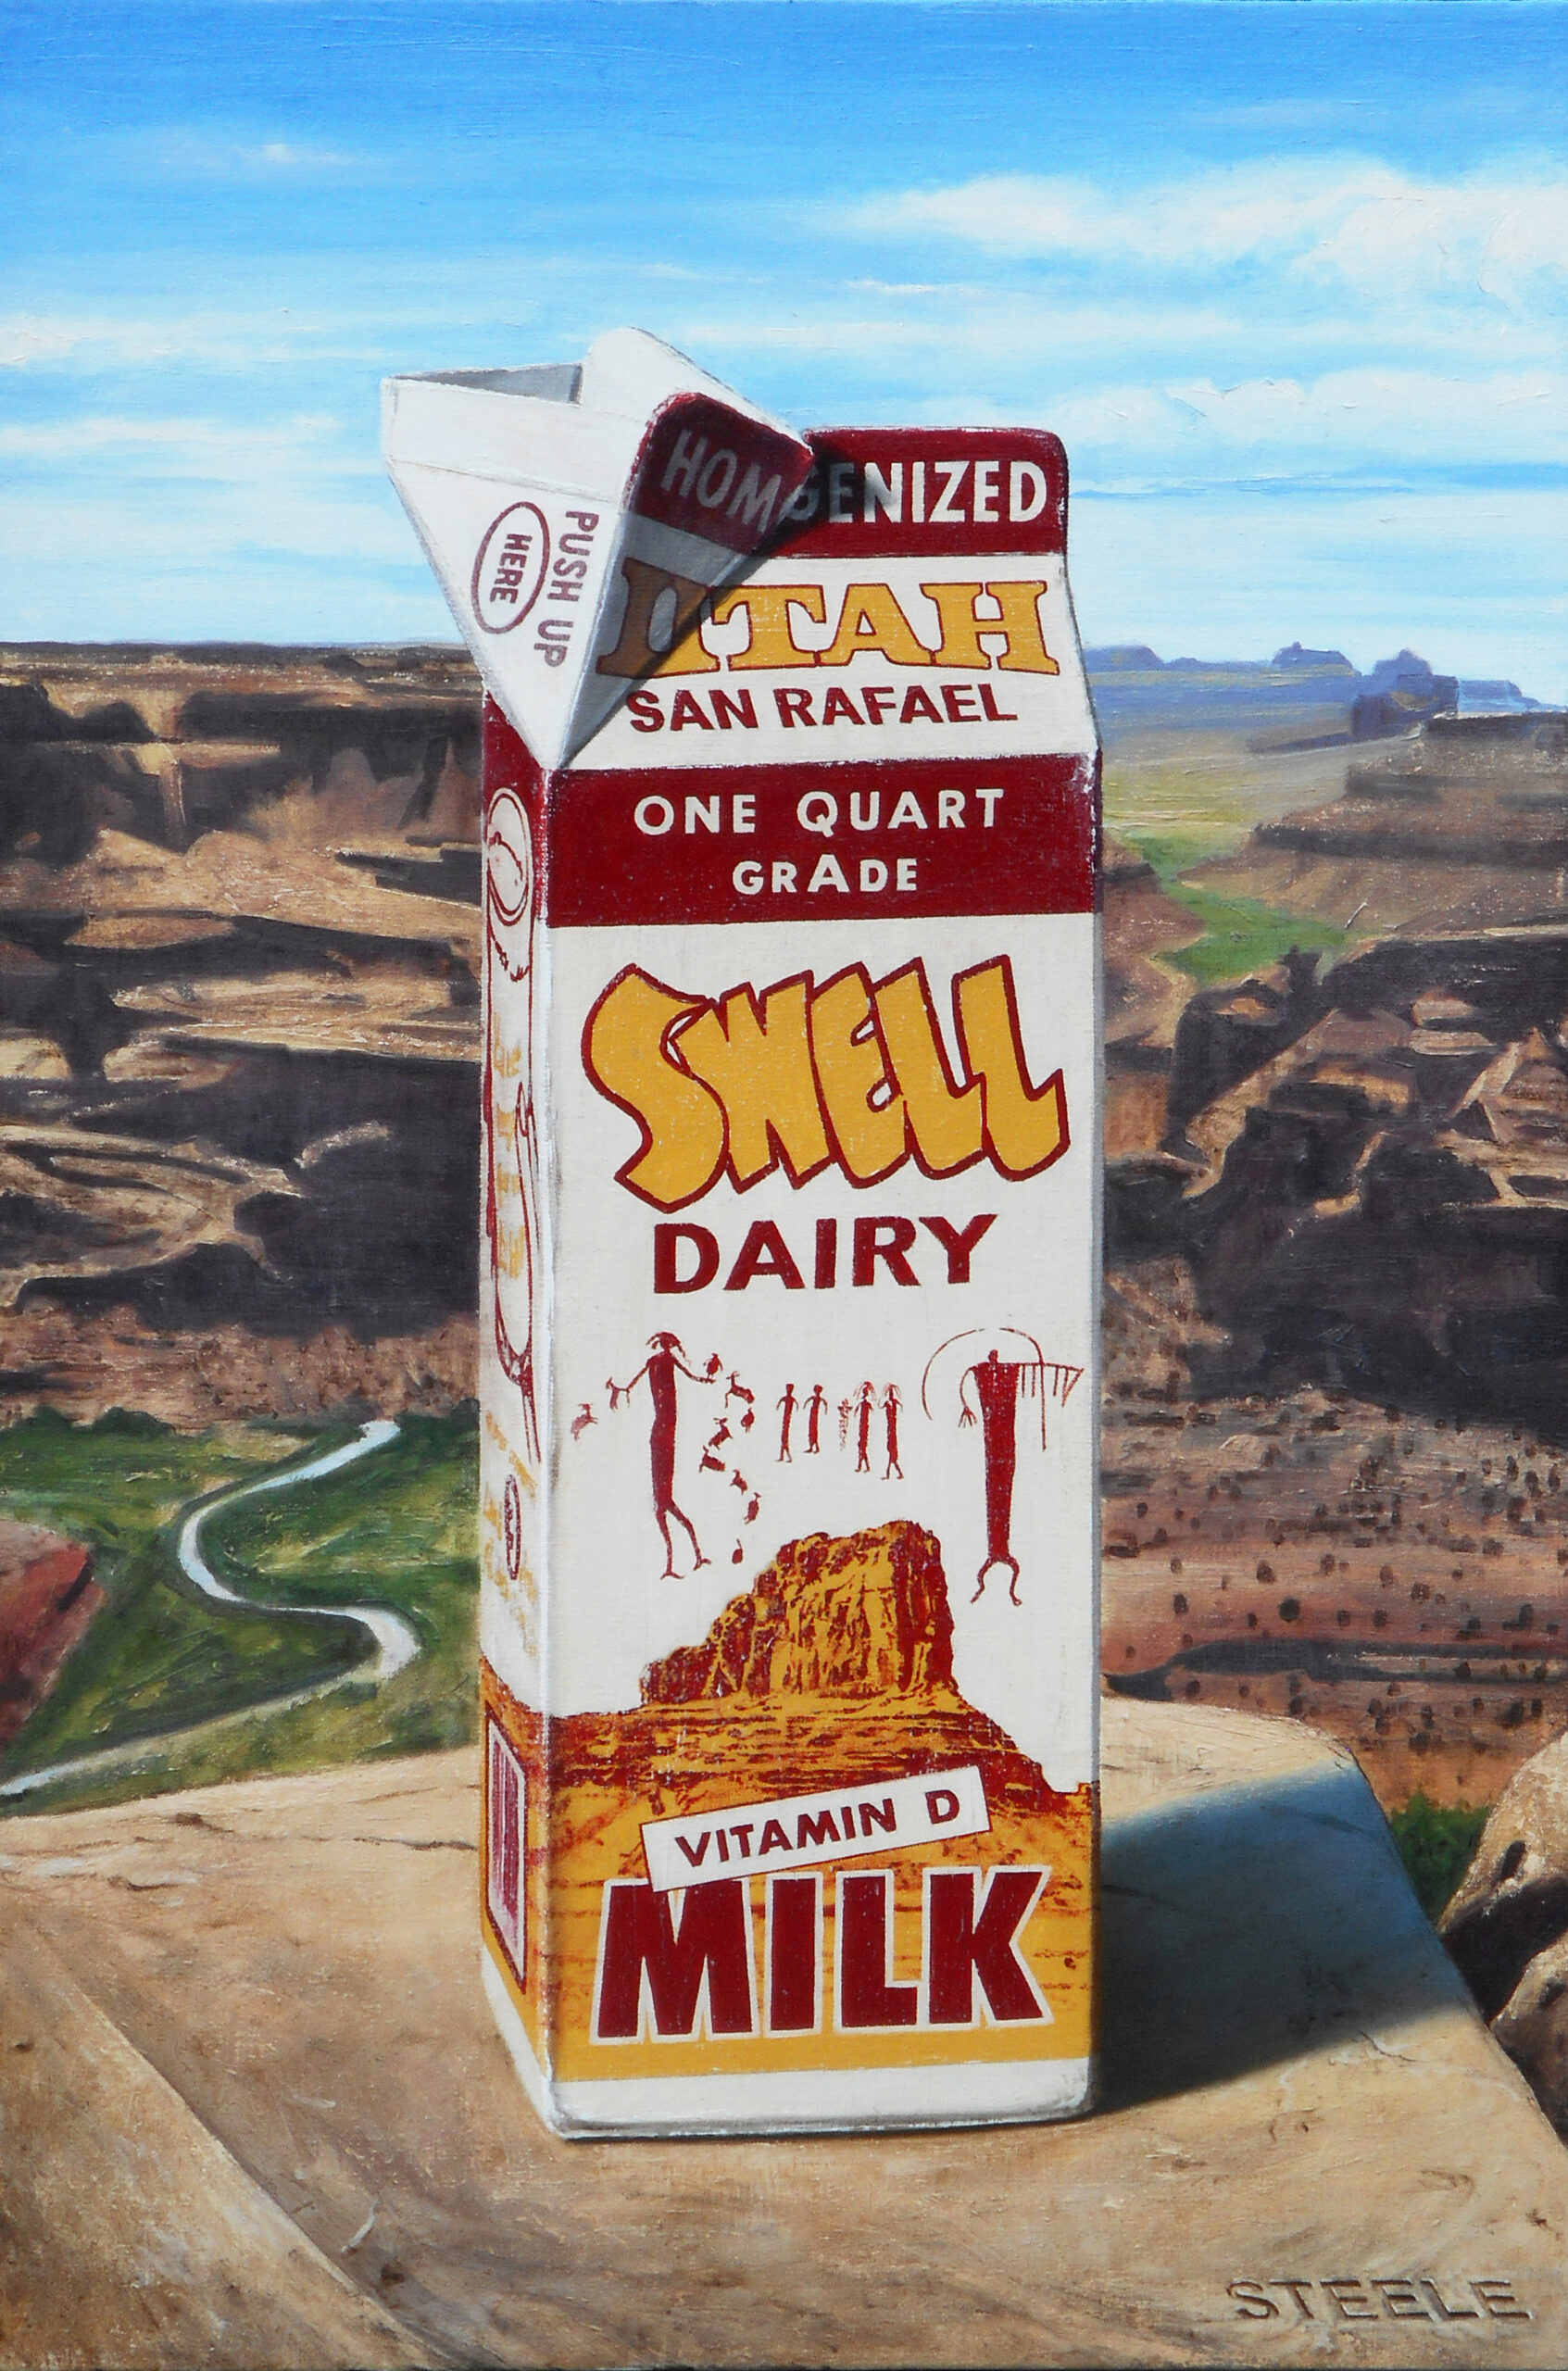 Swell Dairy